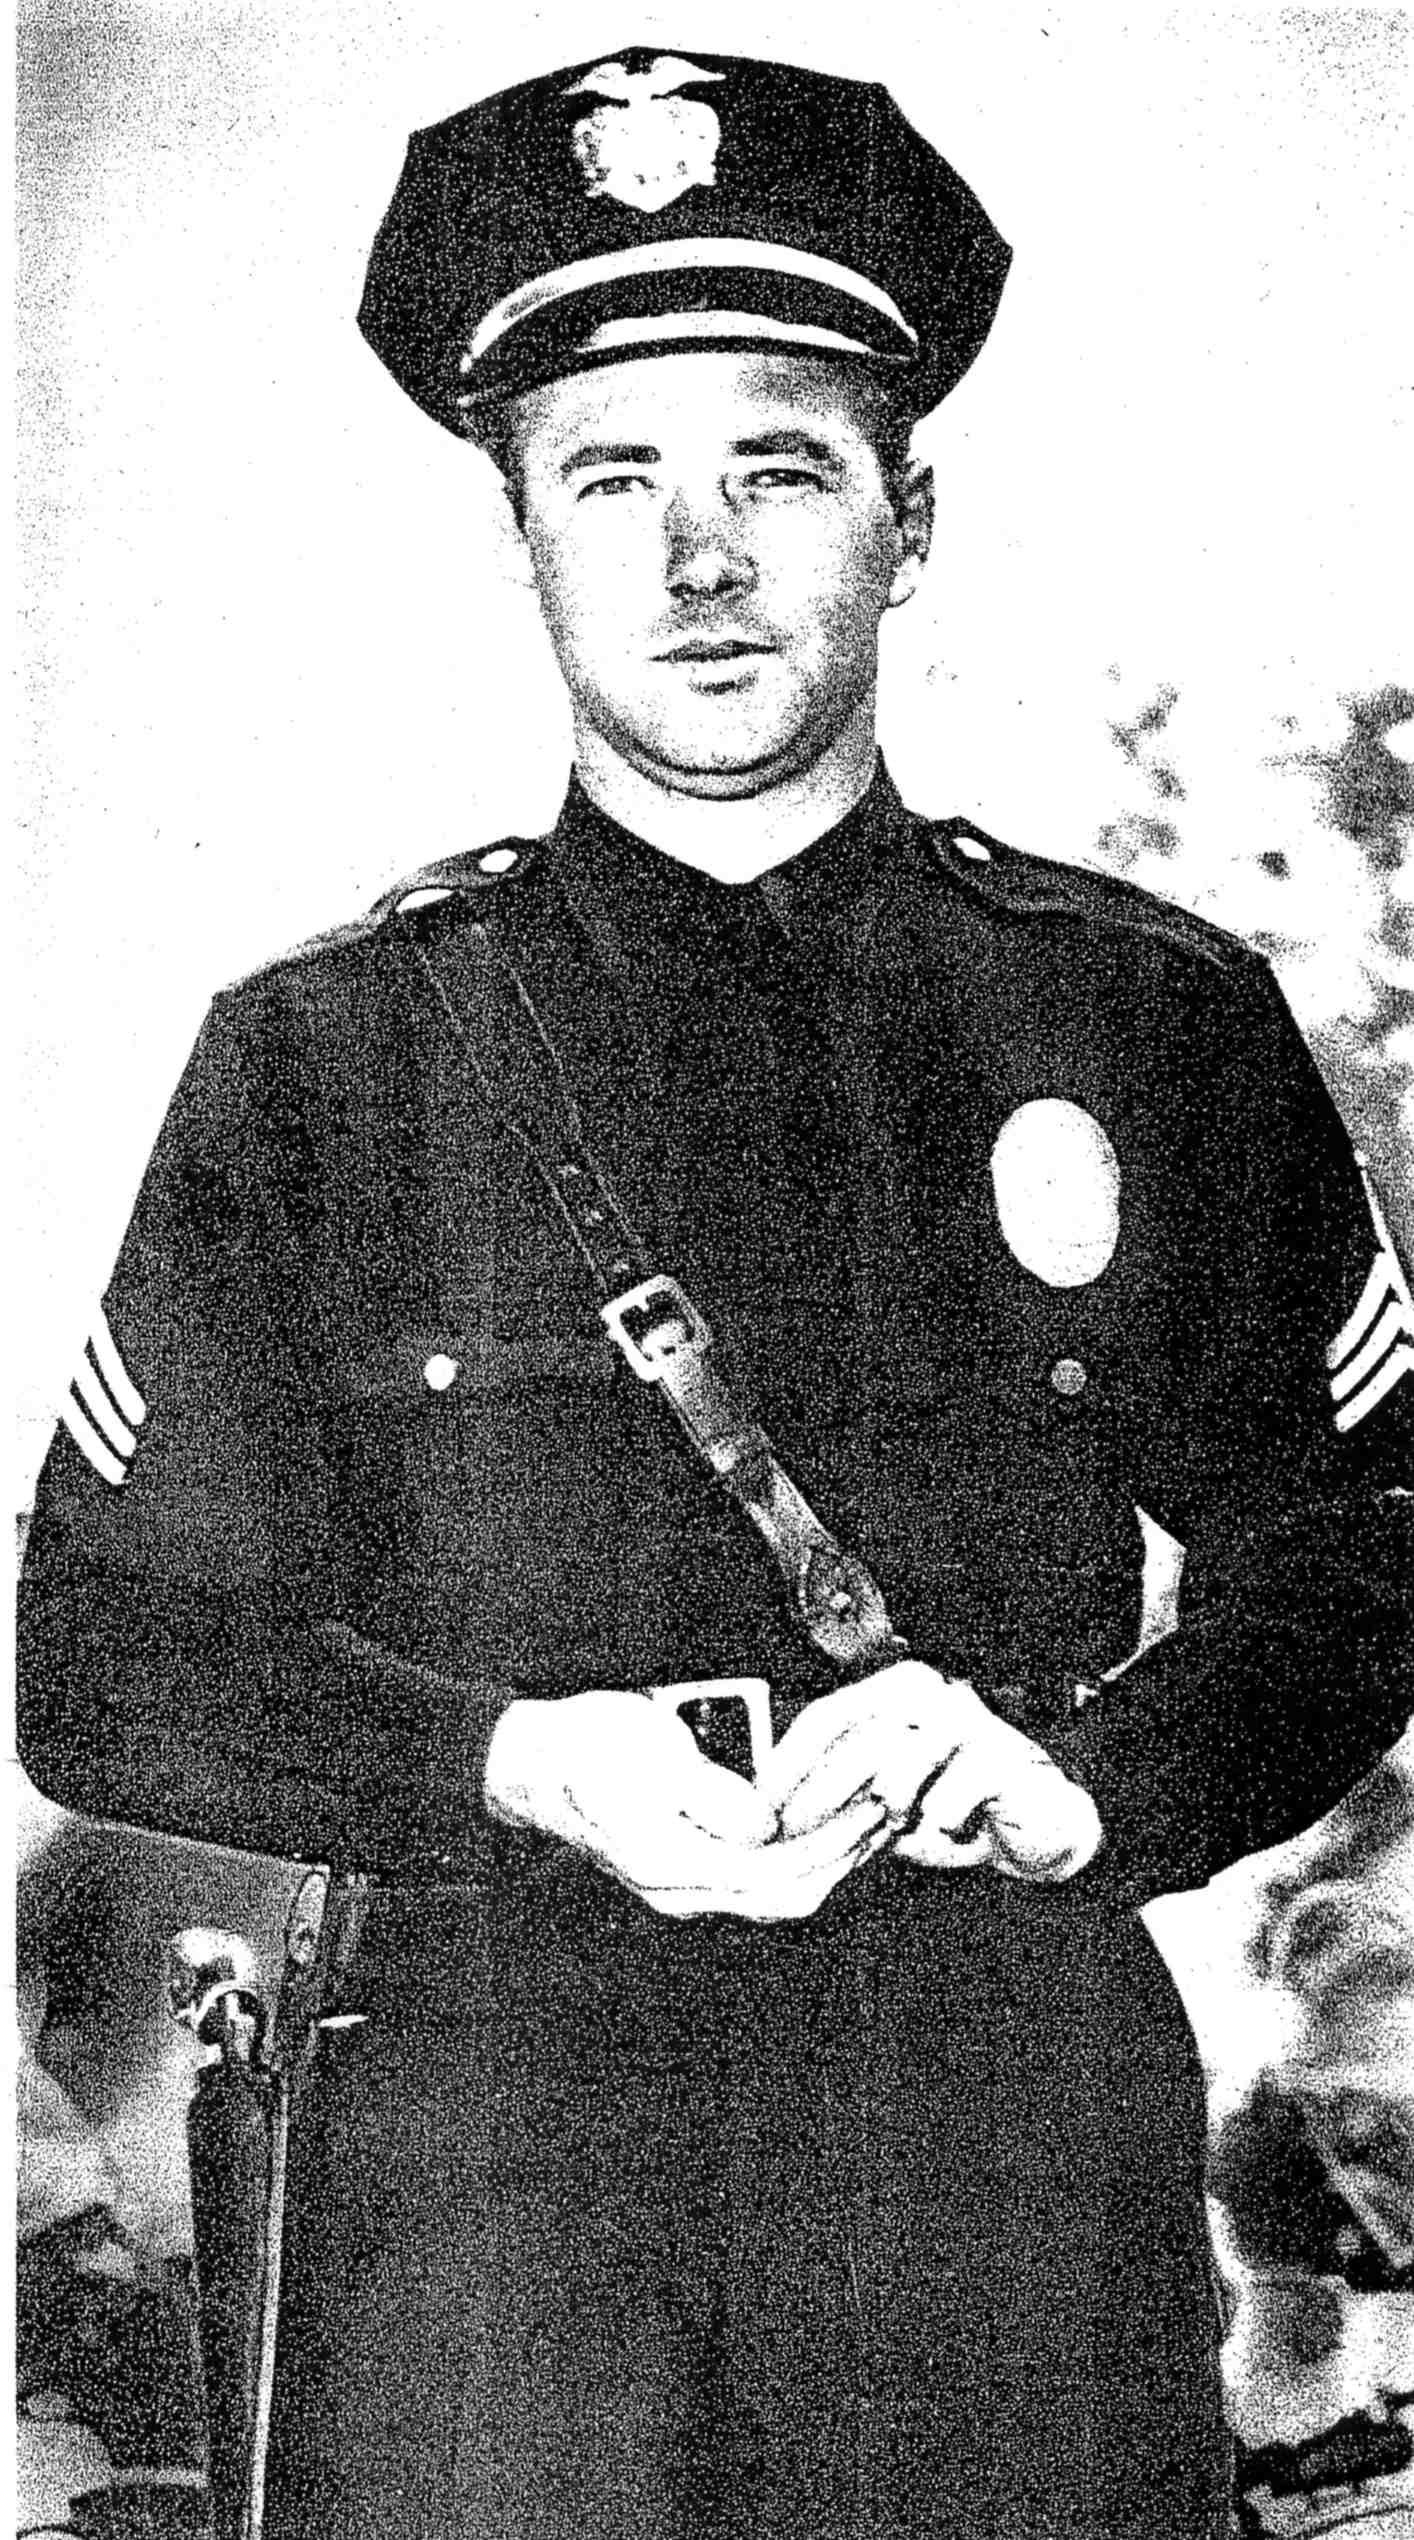 Sgt. Charles Stoker in Uniform